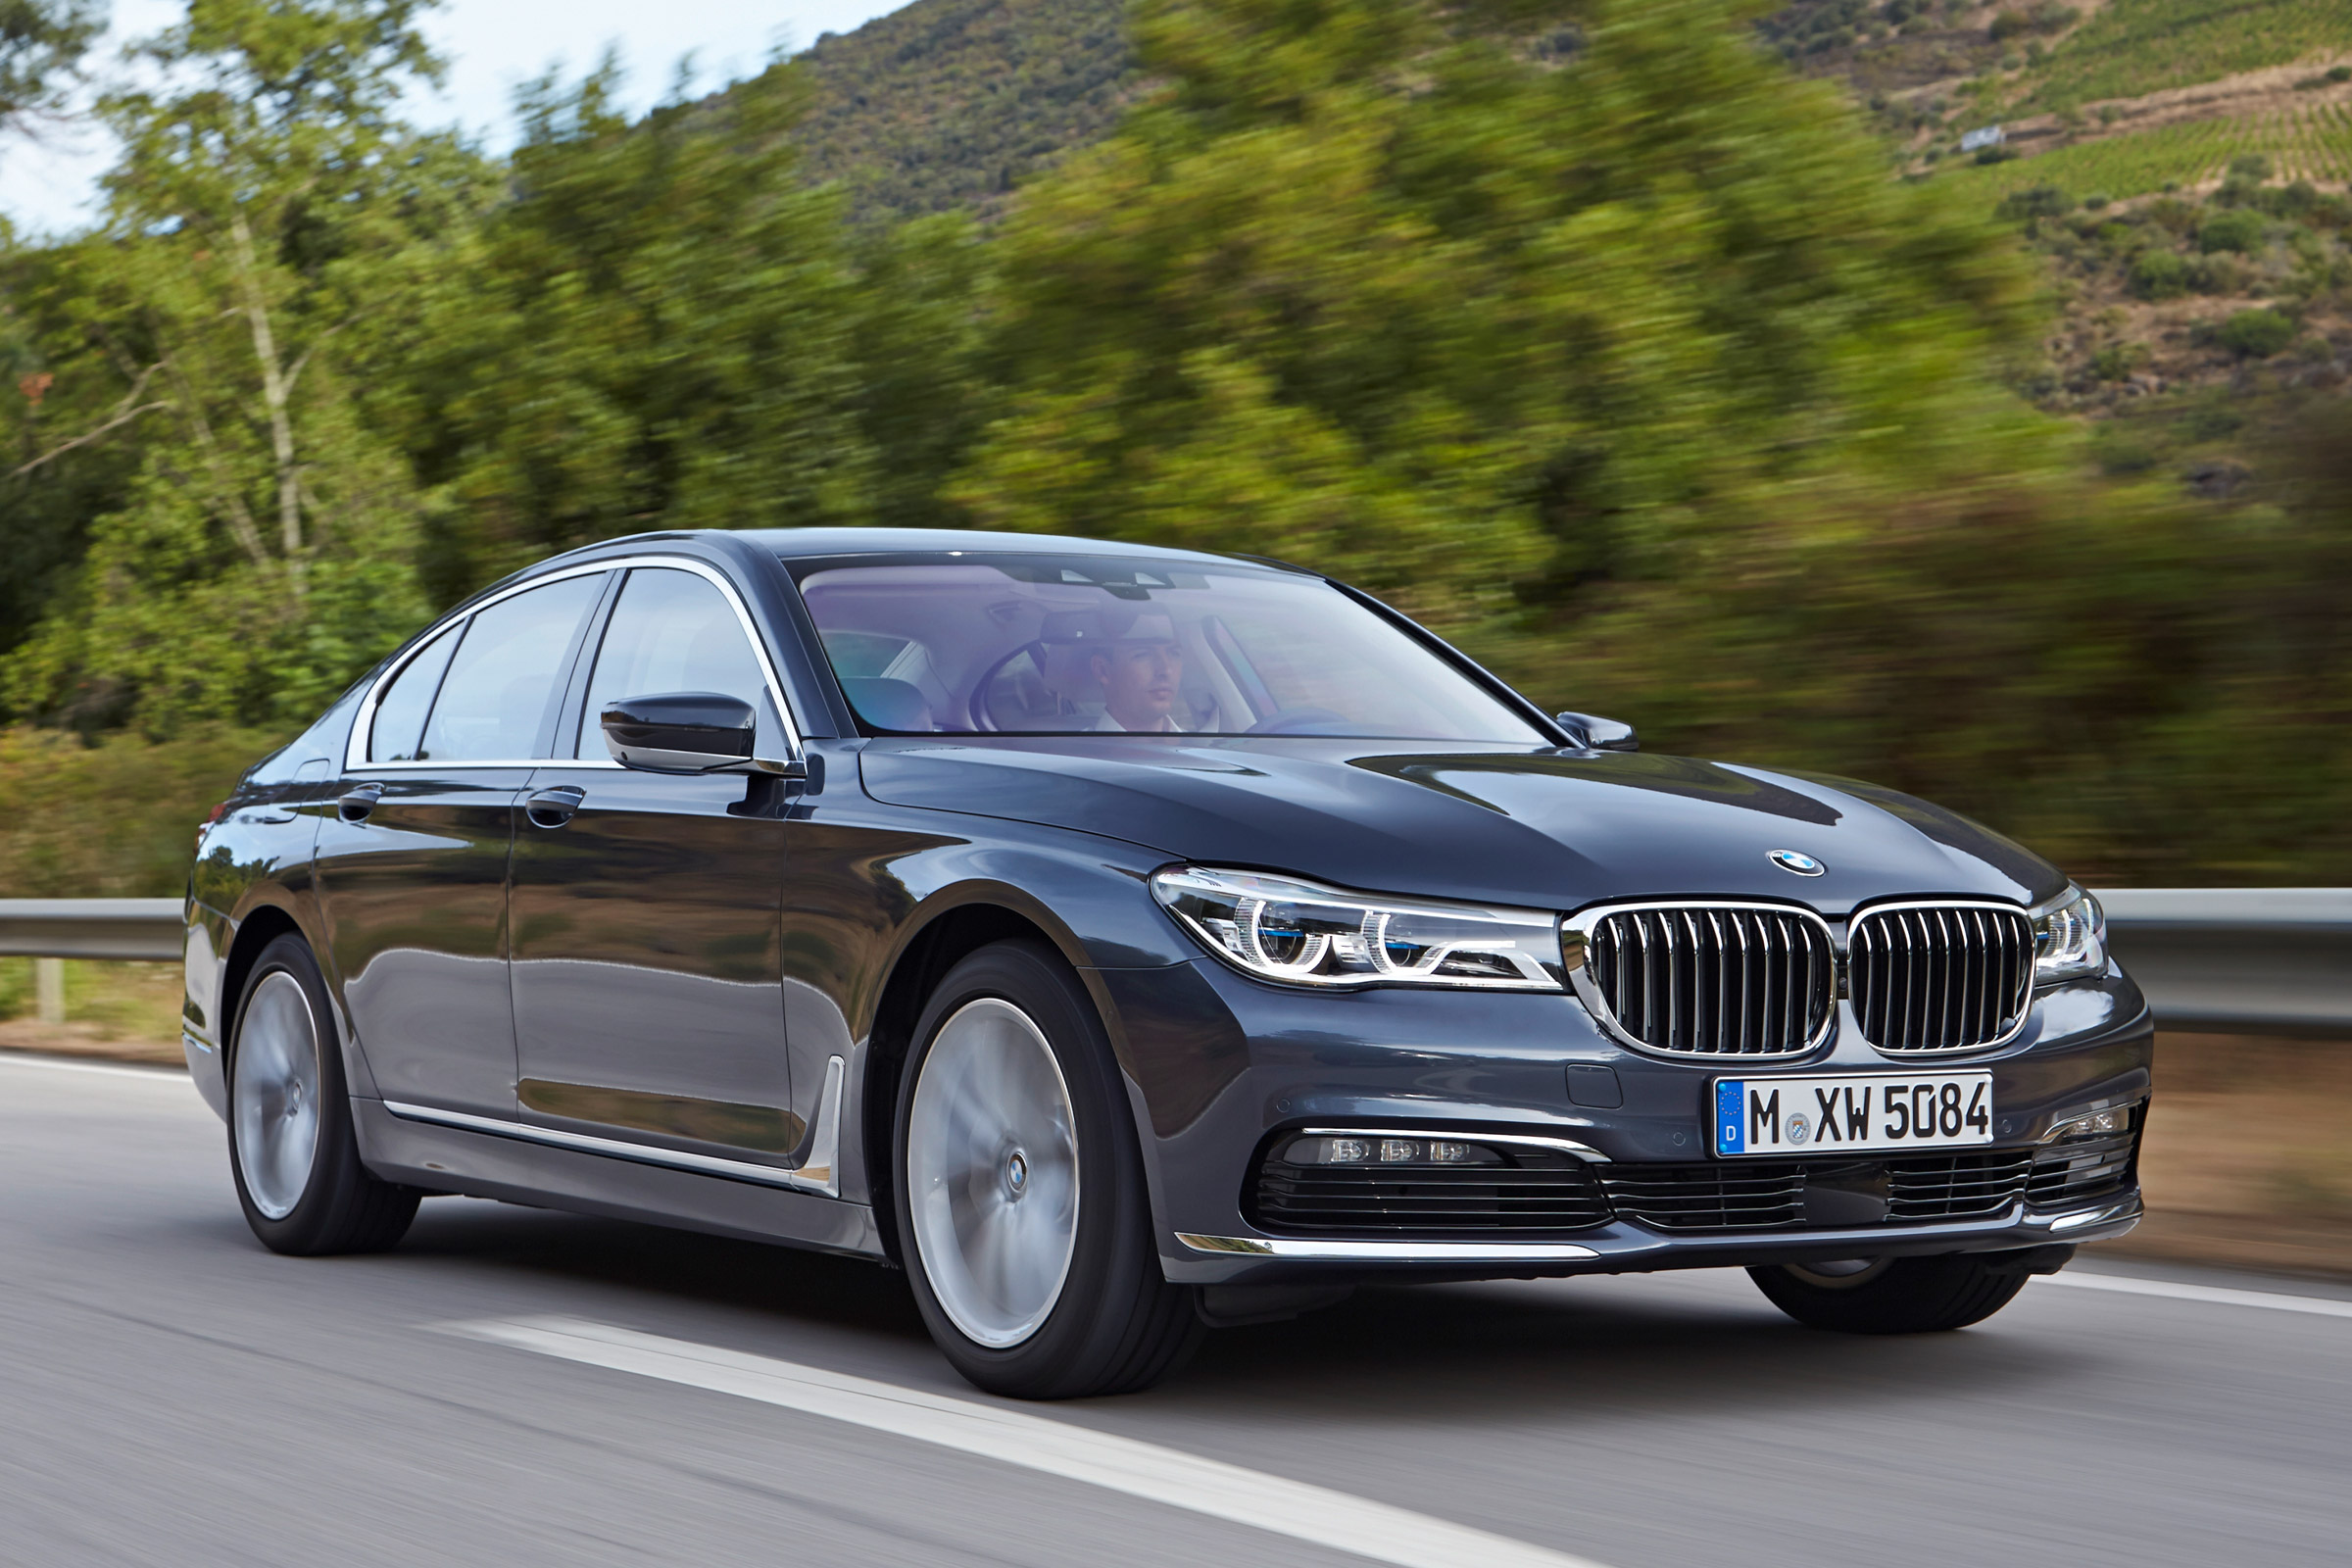 New Bmw 7 Series 2015 Review Auto Express